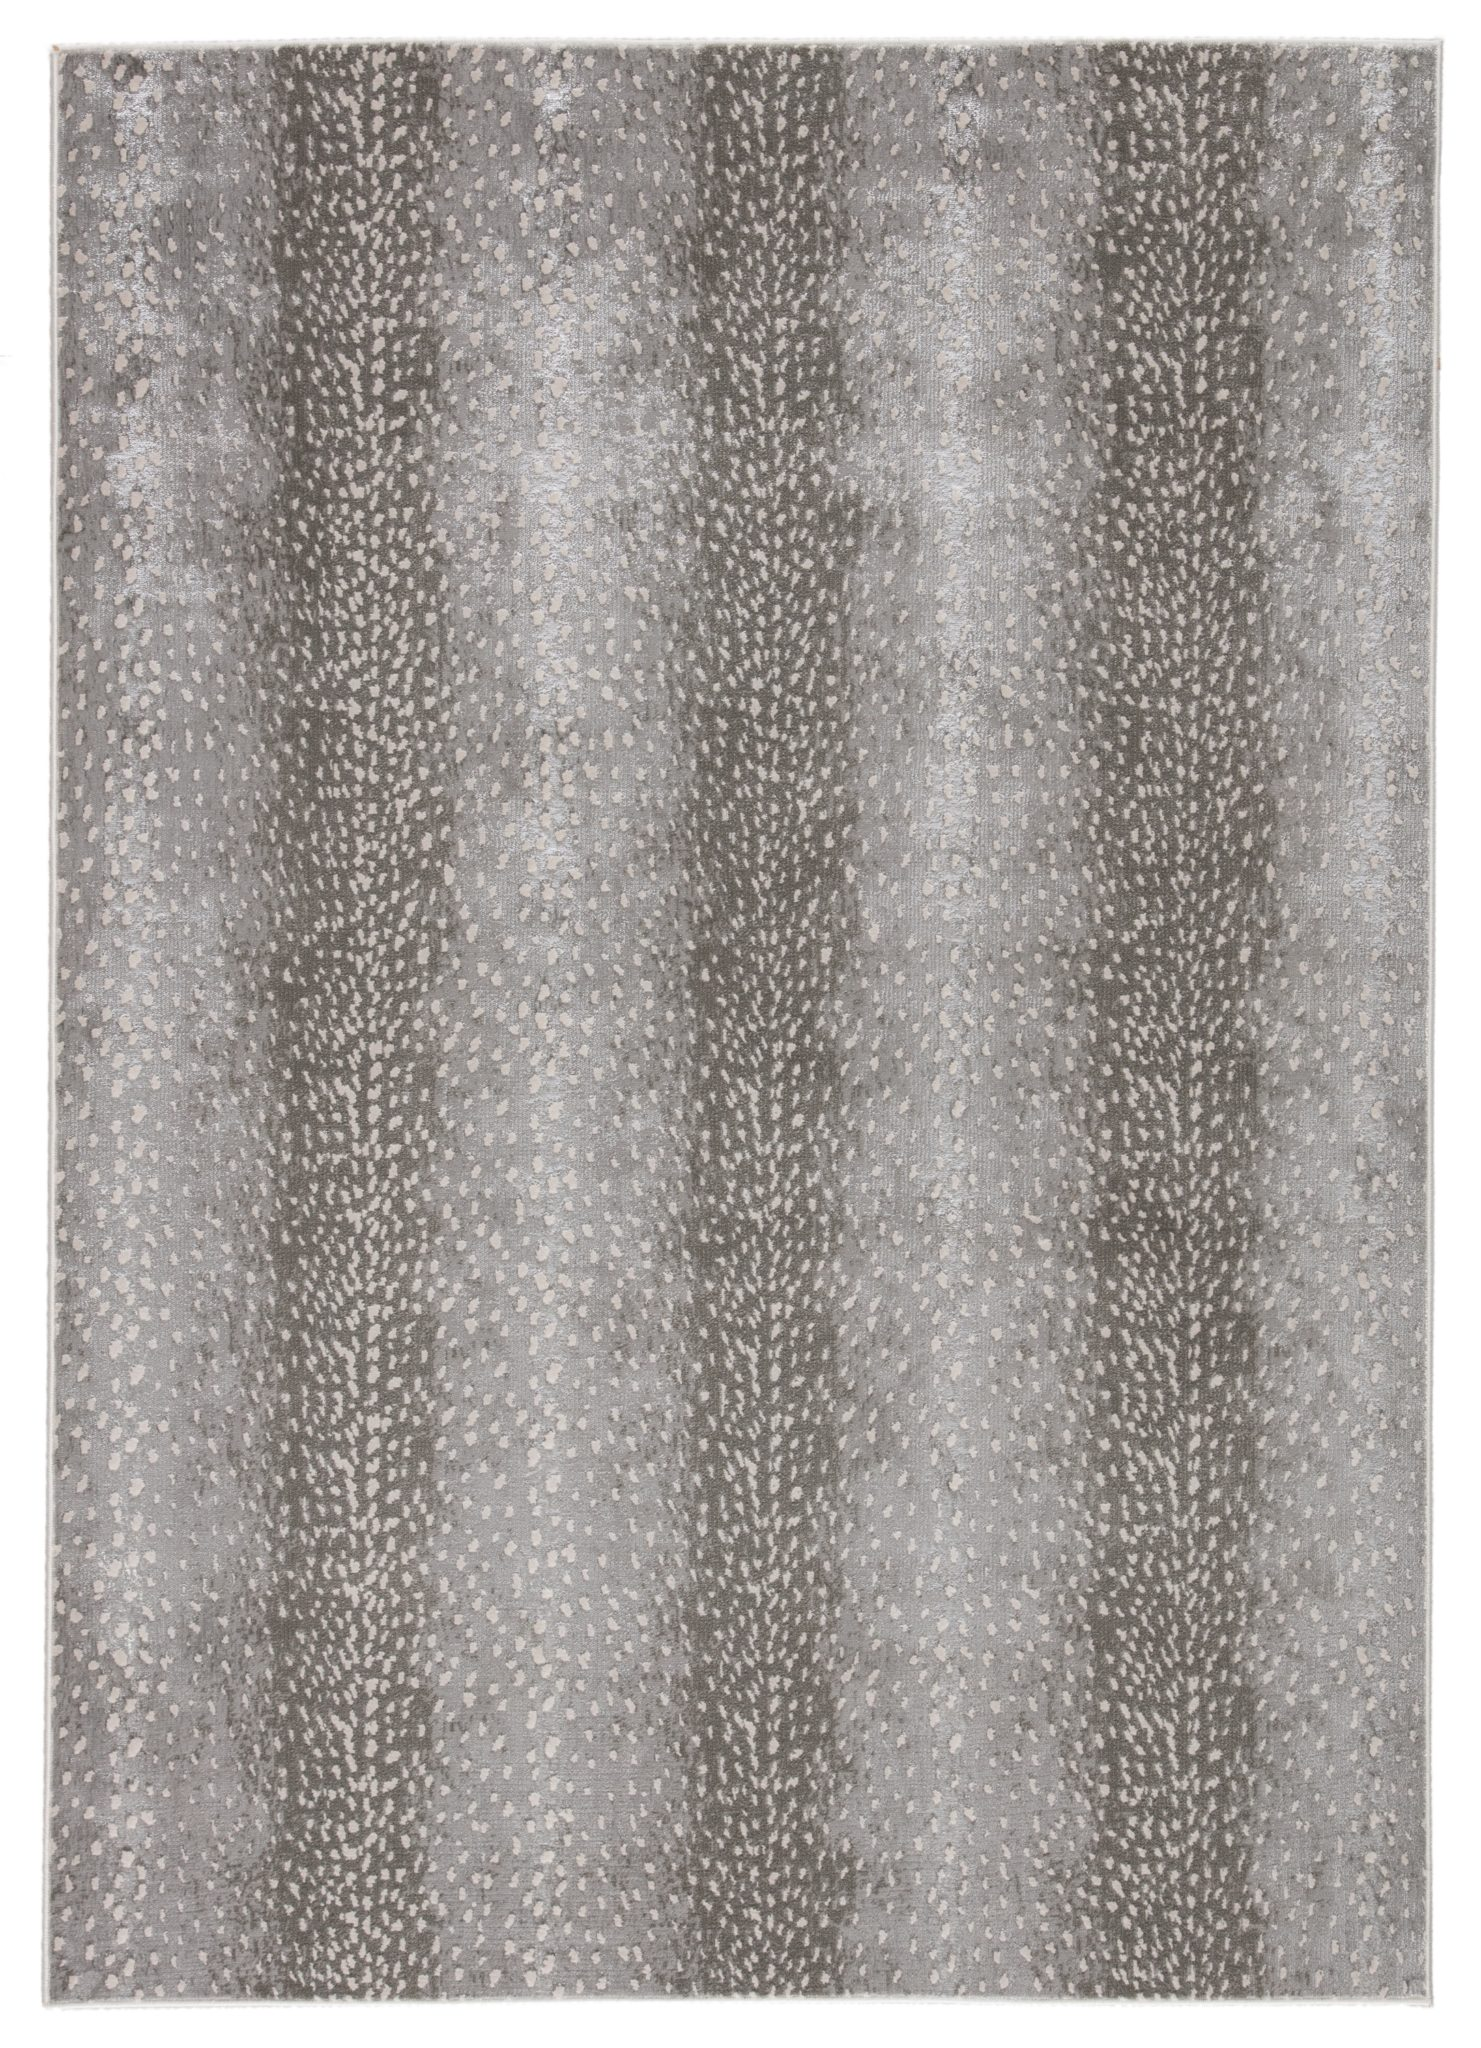 The lustrous, hi-lo pile animal print Axis rug is part of Jaipur Living's Catalyst collection.